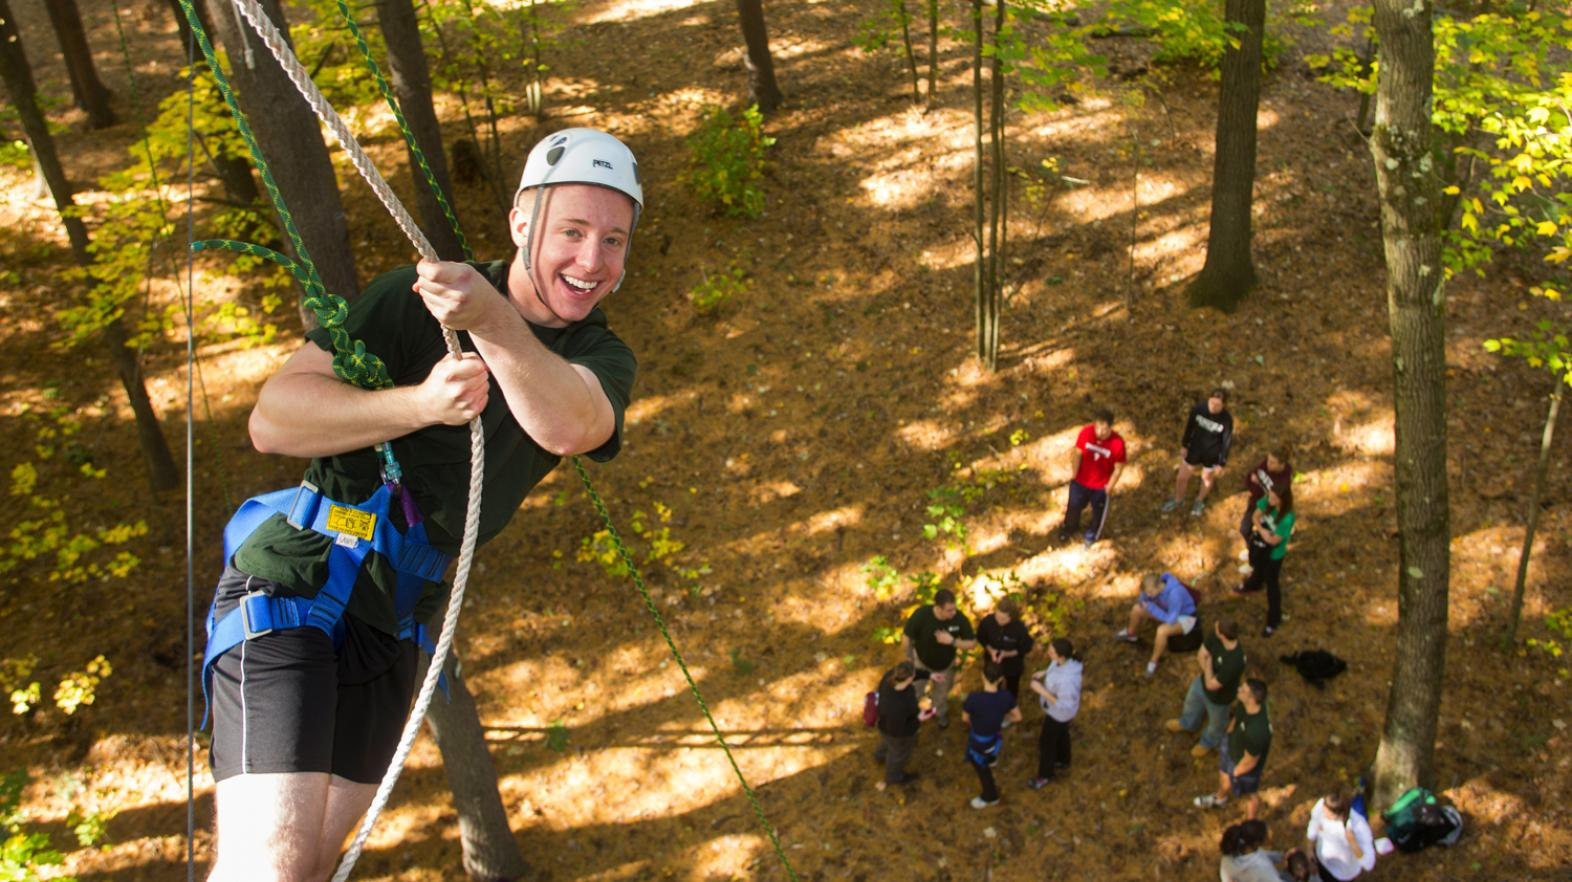 Students on the ropes course enjoy East Campus at Springfield College